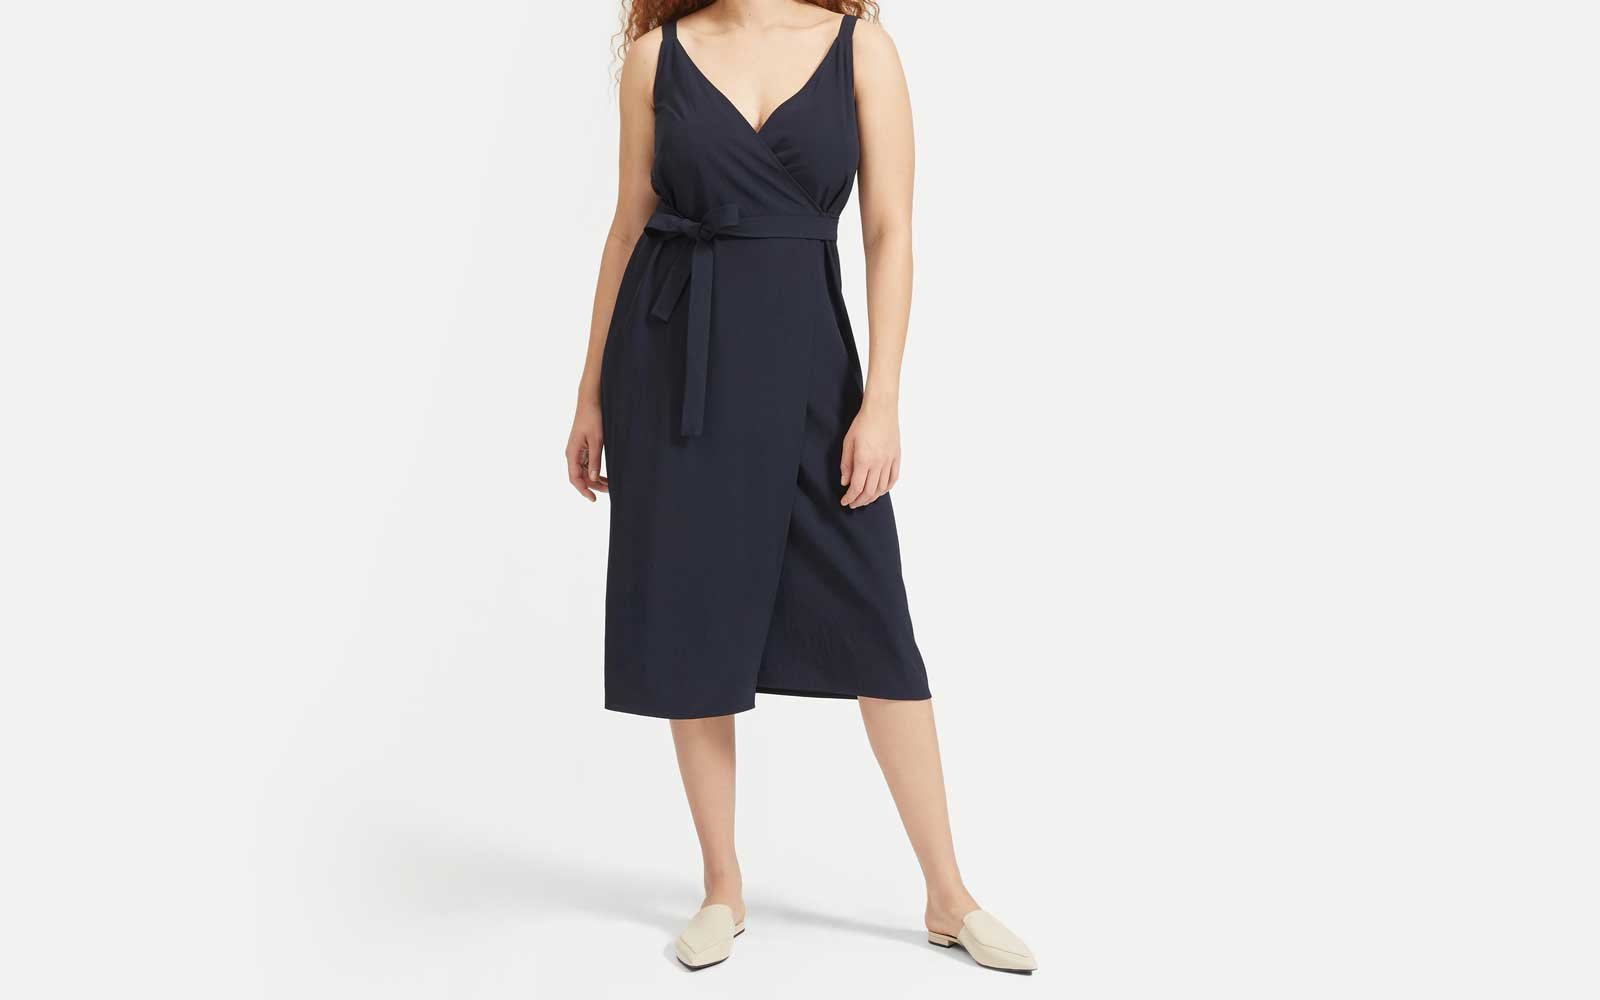 The Best Wrinkle resistant Dresses for Travel | Travel + Leisure